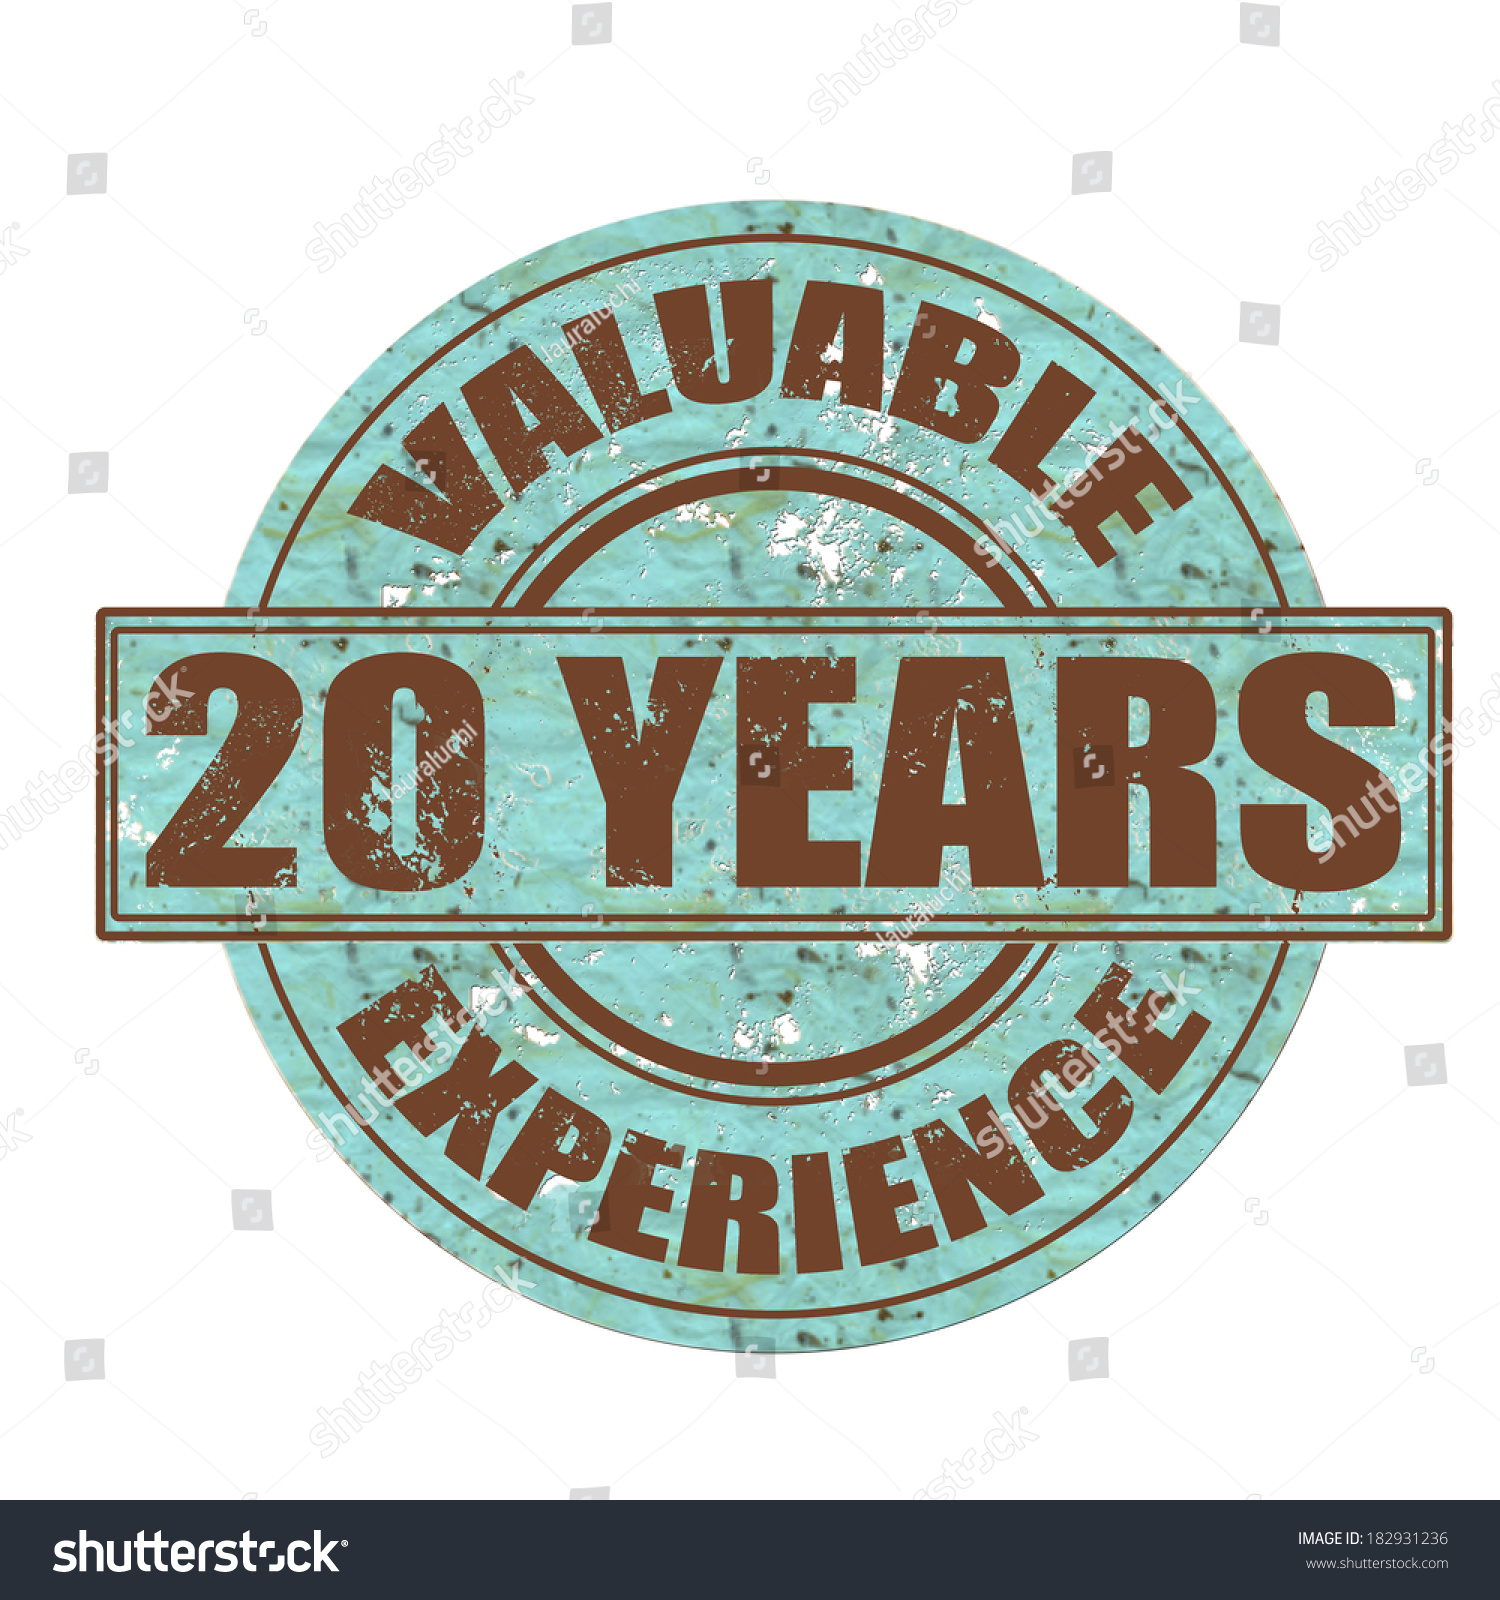 valuable experience grunge stamp on vector stock vector  valuable experience grunge stamp on vector illustration